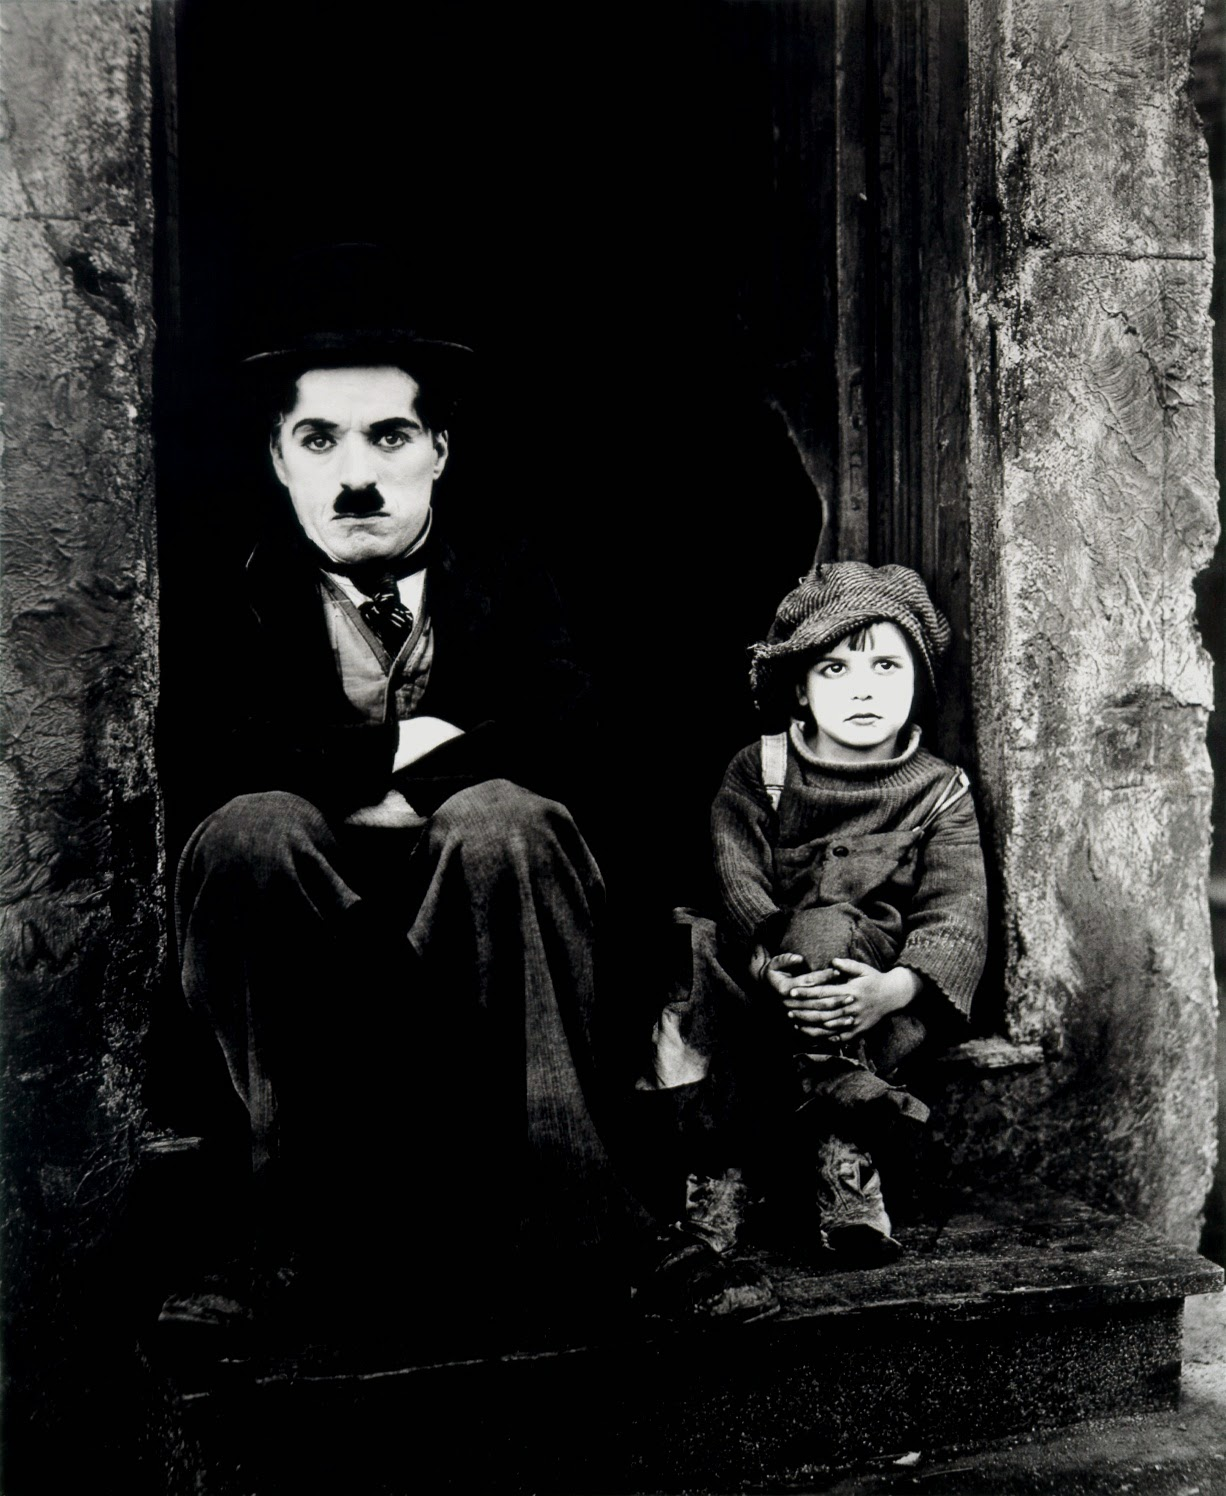 essay day heart of the tramp charlie chaplin s ethic of dignity